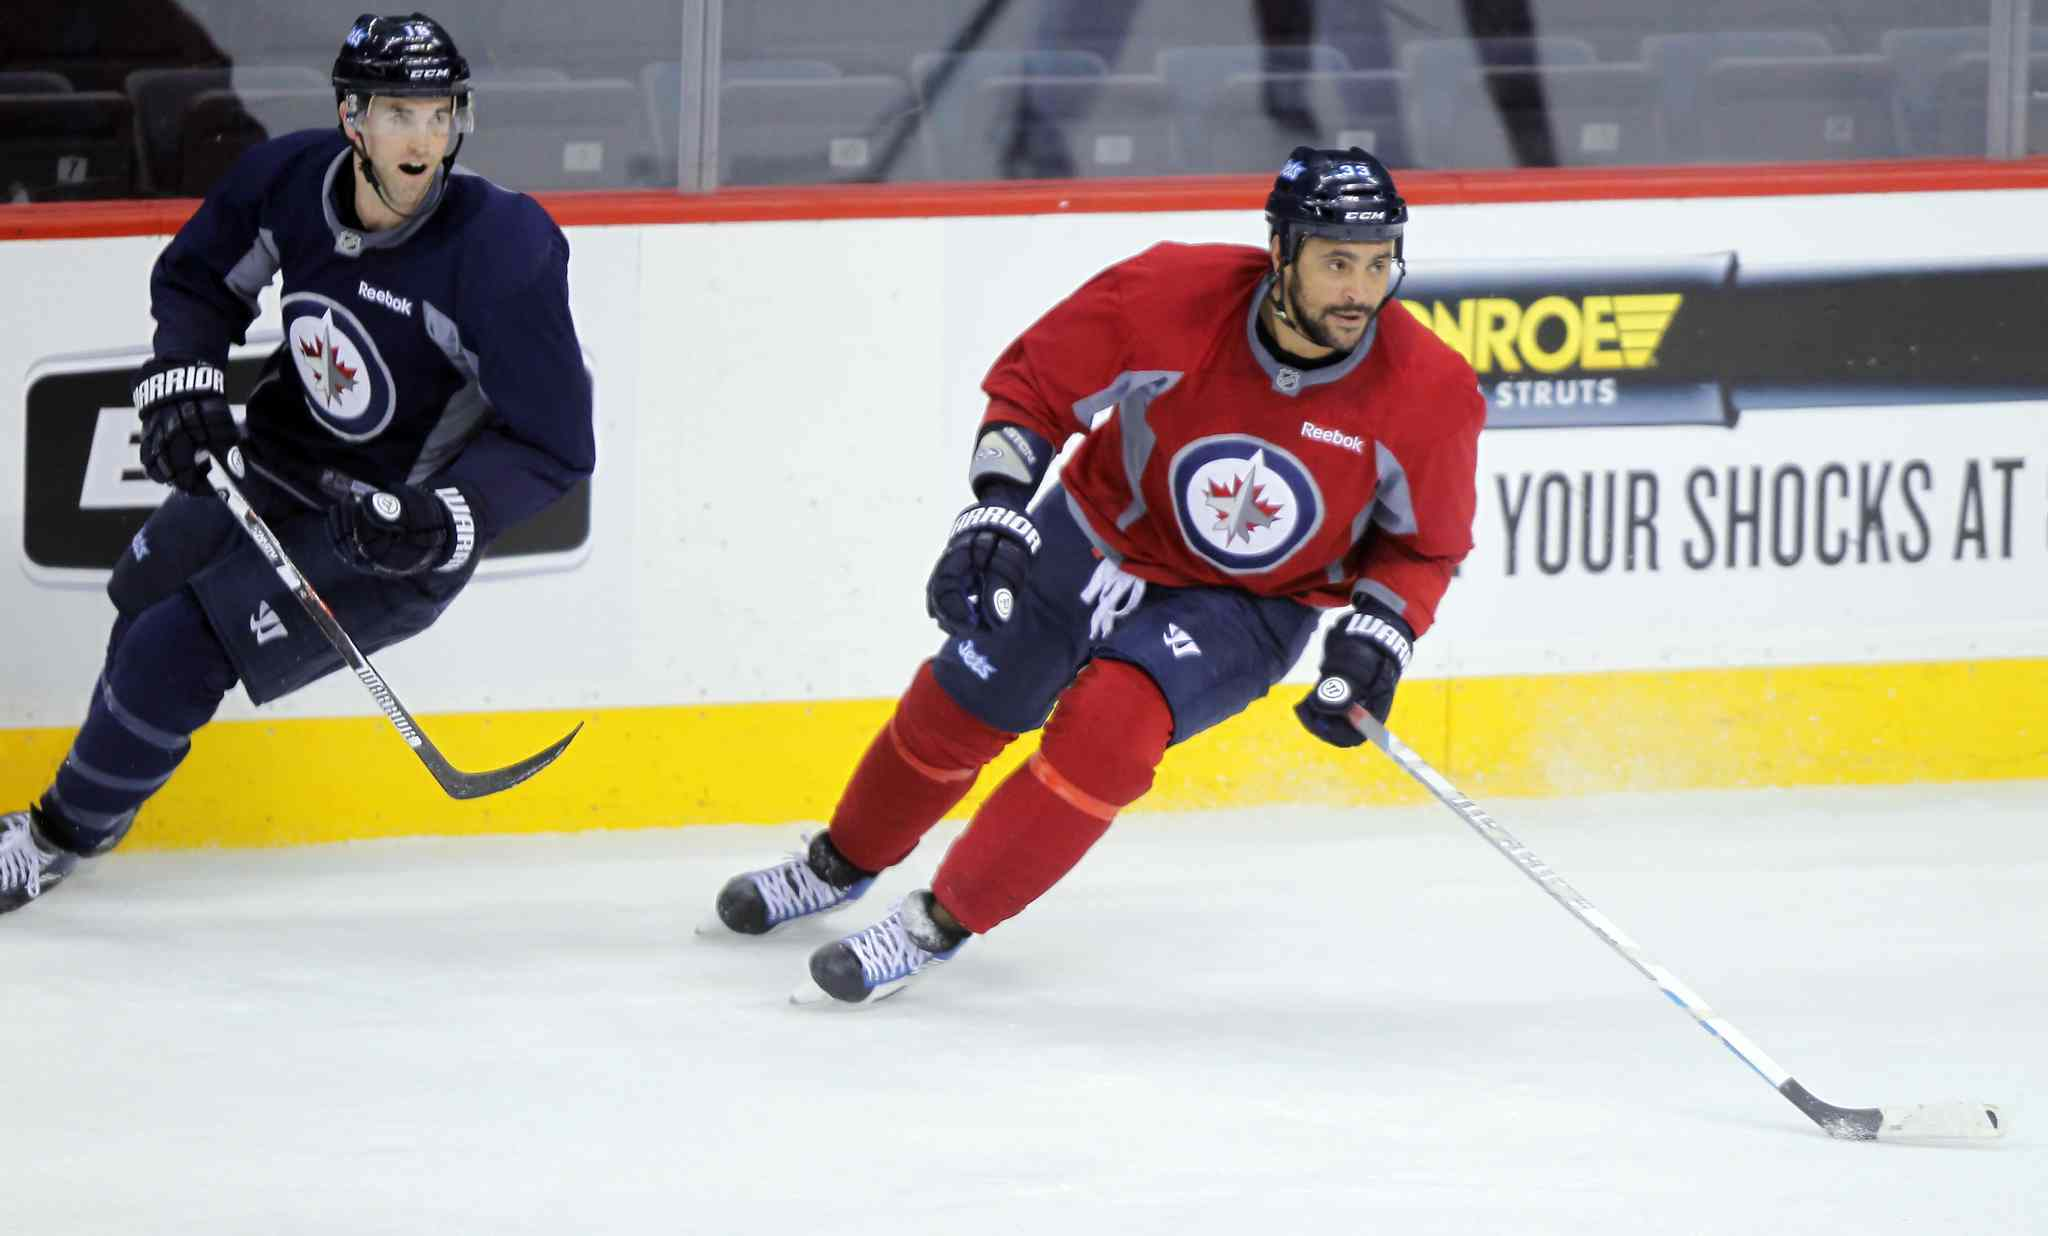 Captain Andrew Ladd, left, and defenceman Dustin Byfuglien's contract issues are a priority says the Jets GM.